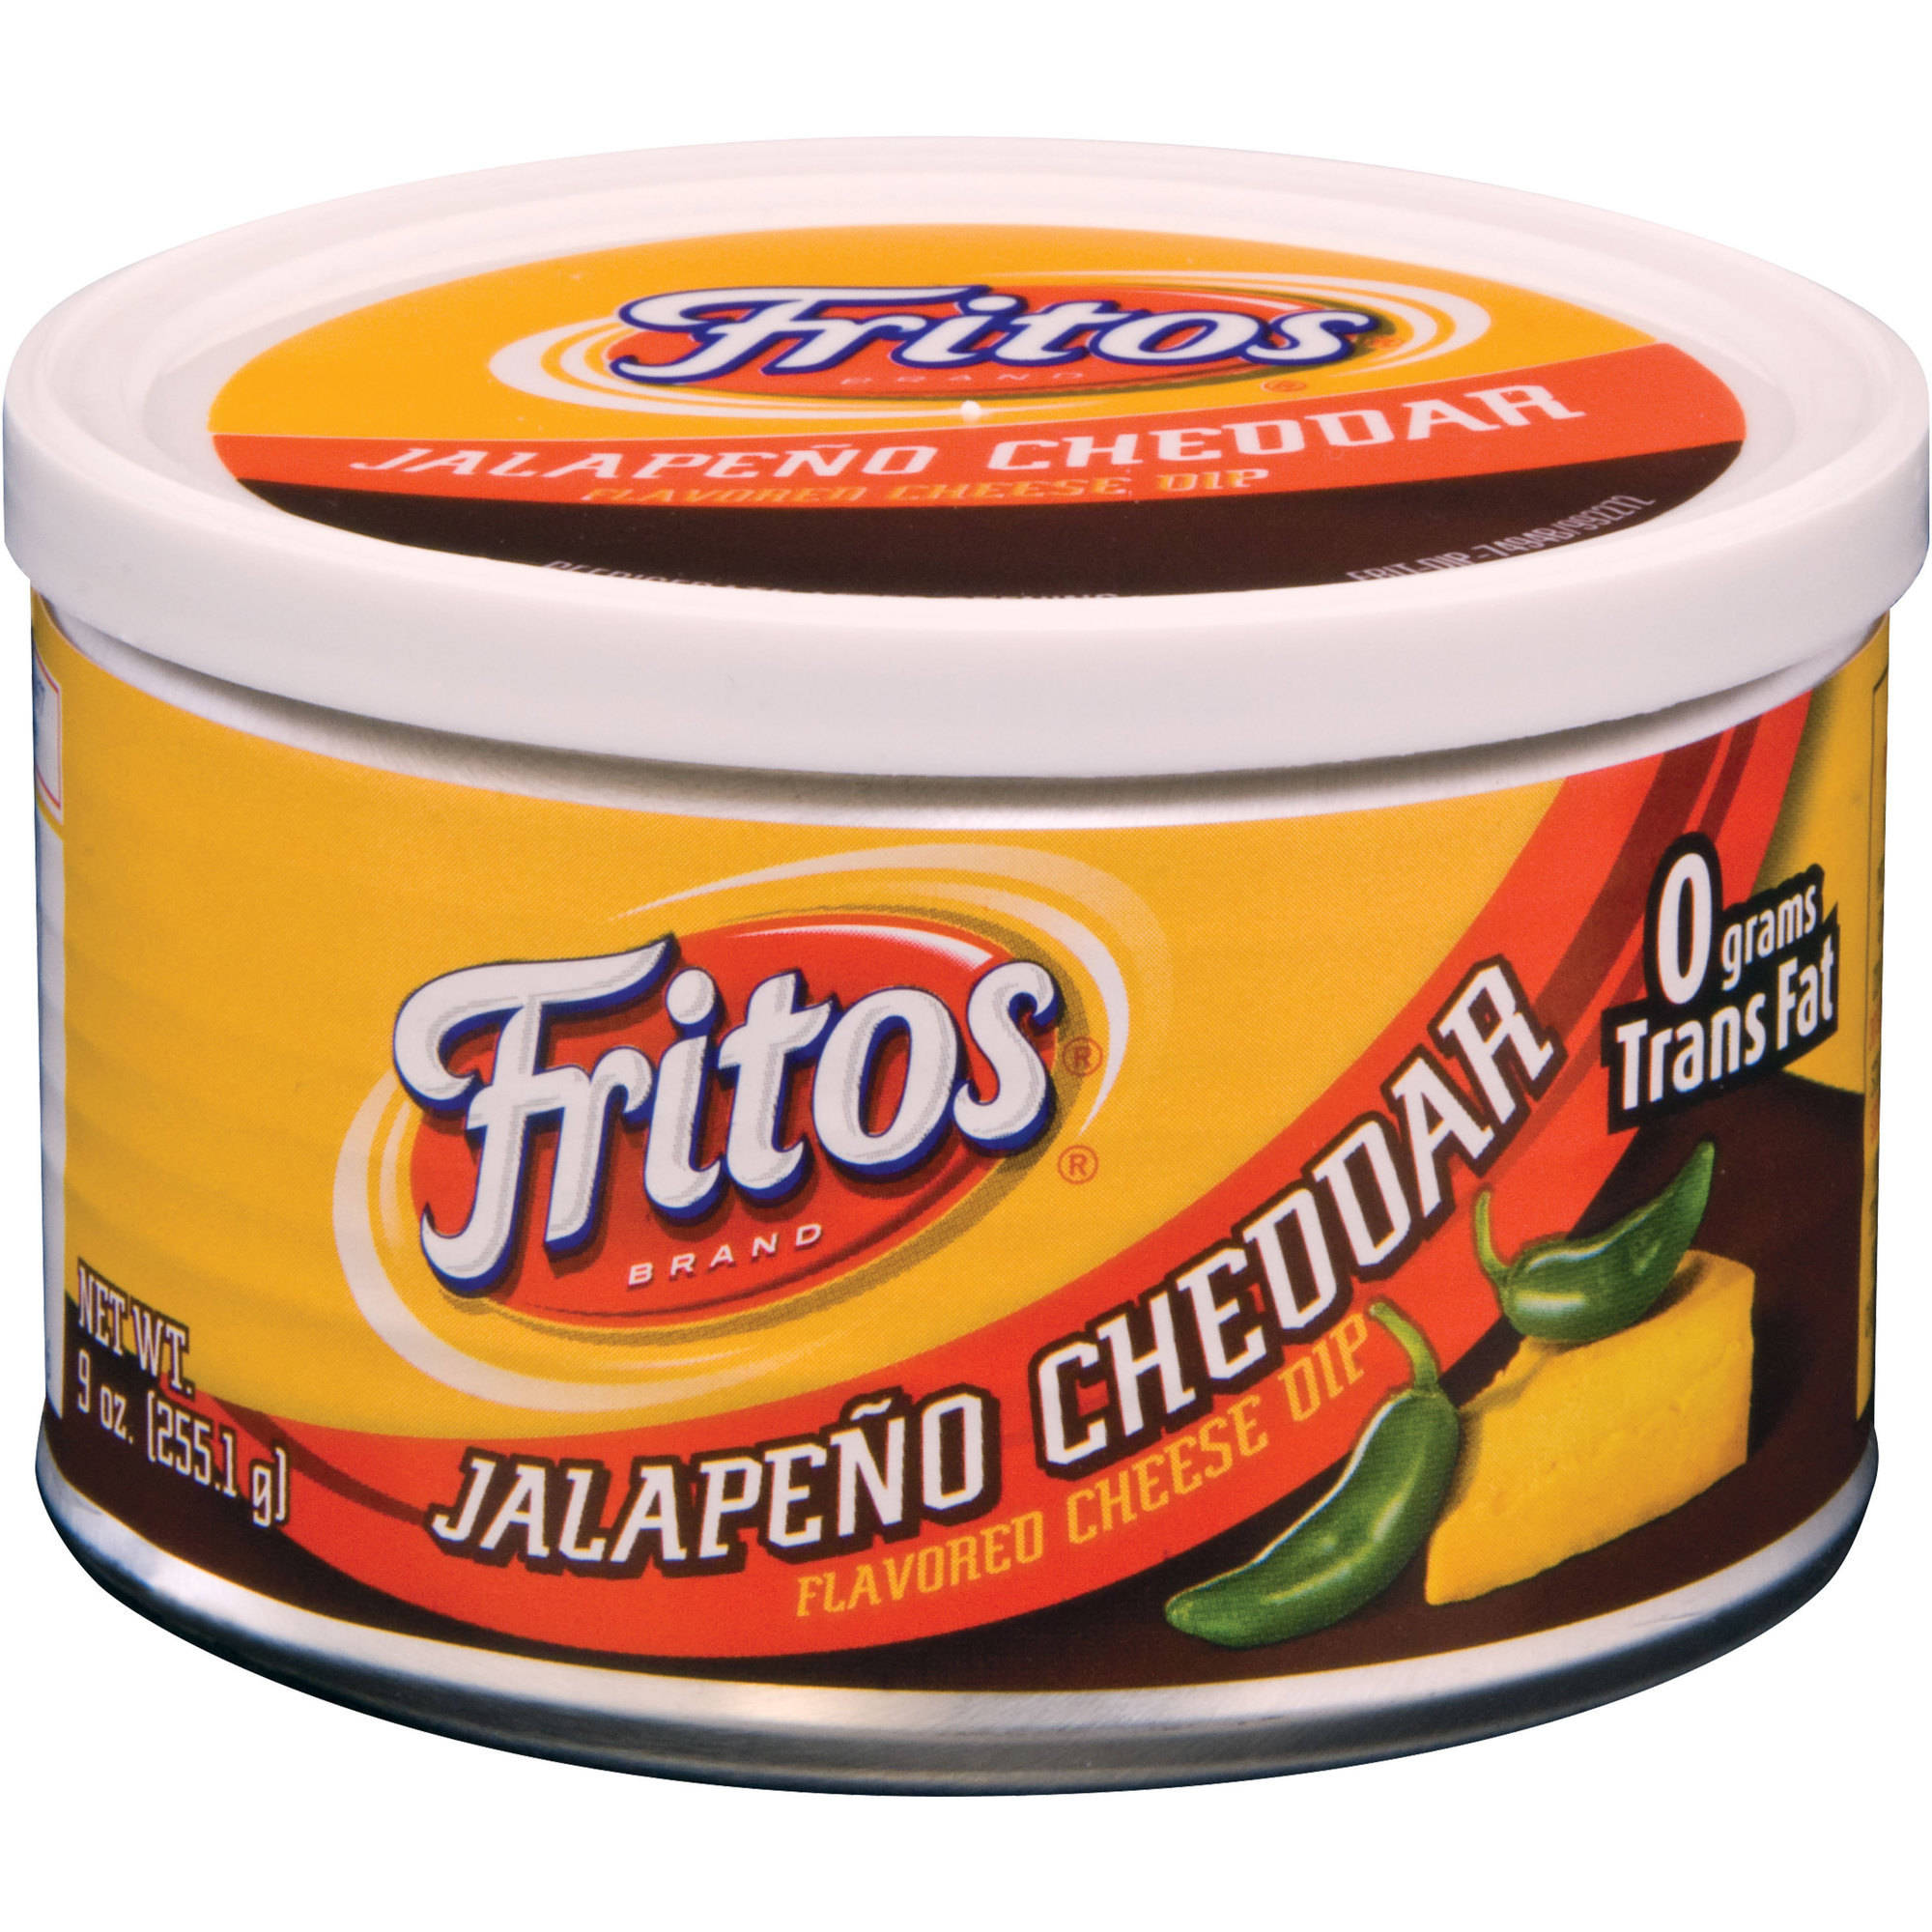 Fritos Jalapeno Cheddar Flavored Cheese Dip, 9 oz.